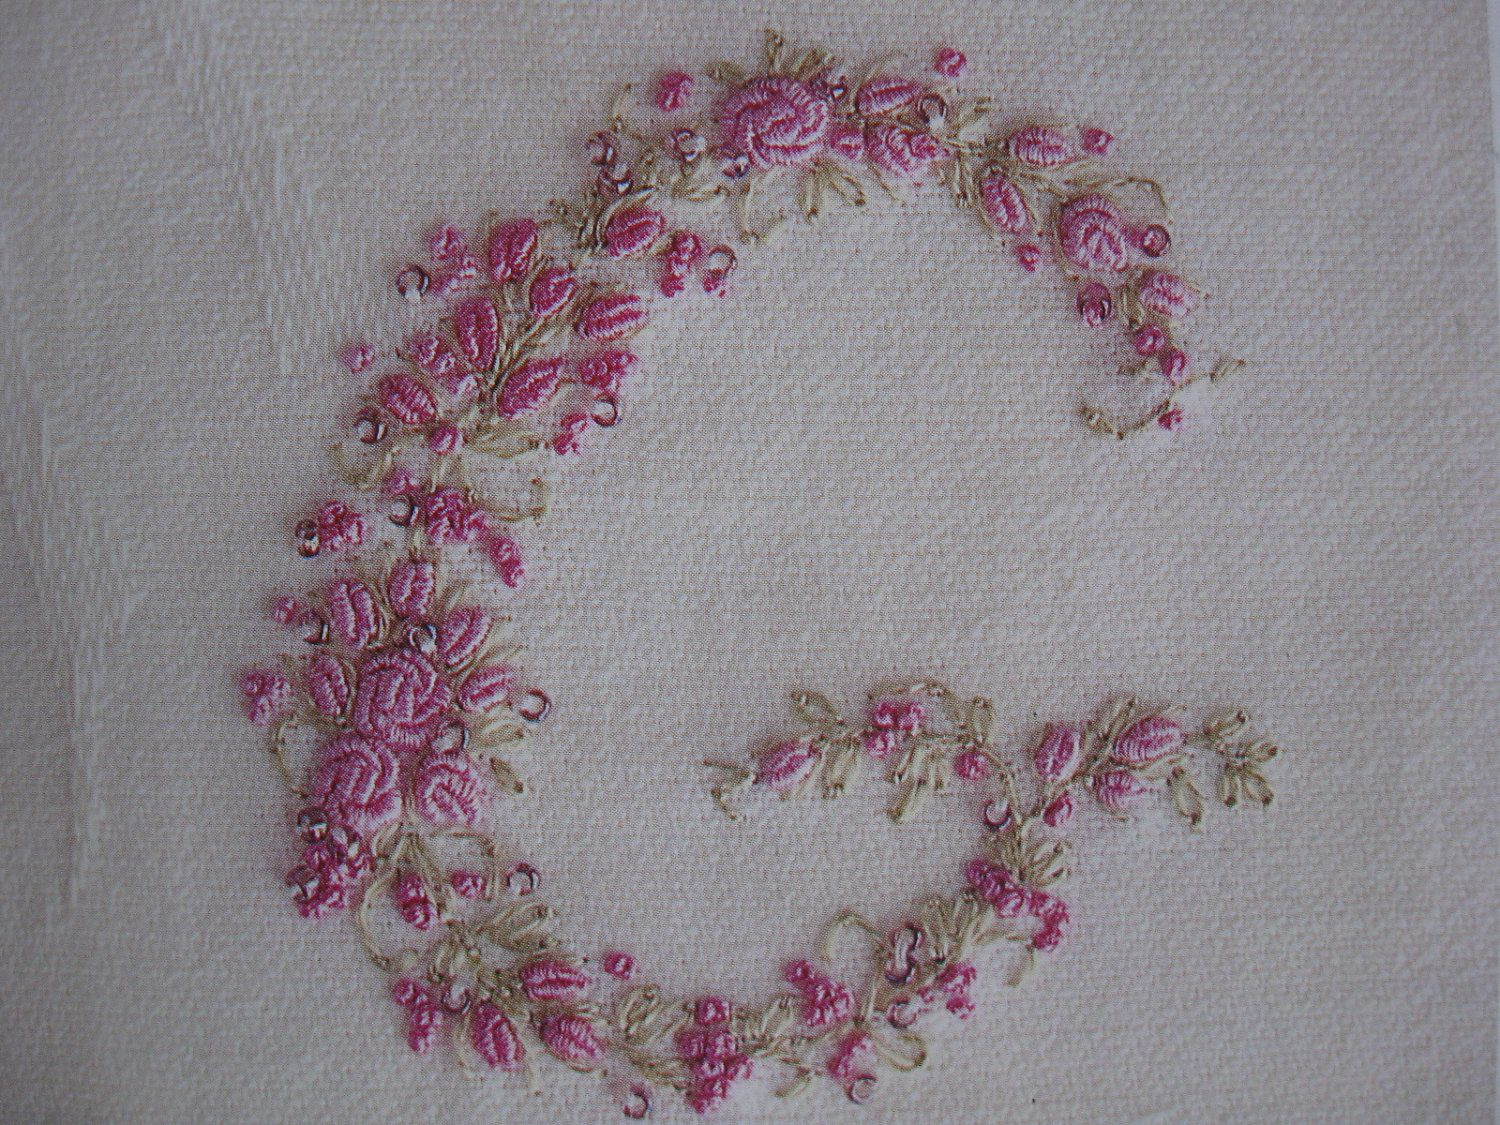 Vintage ladies handkerchief hand embroidery monogram